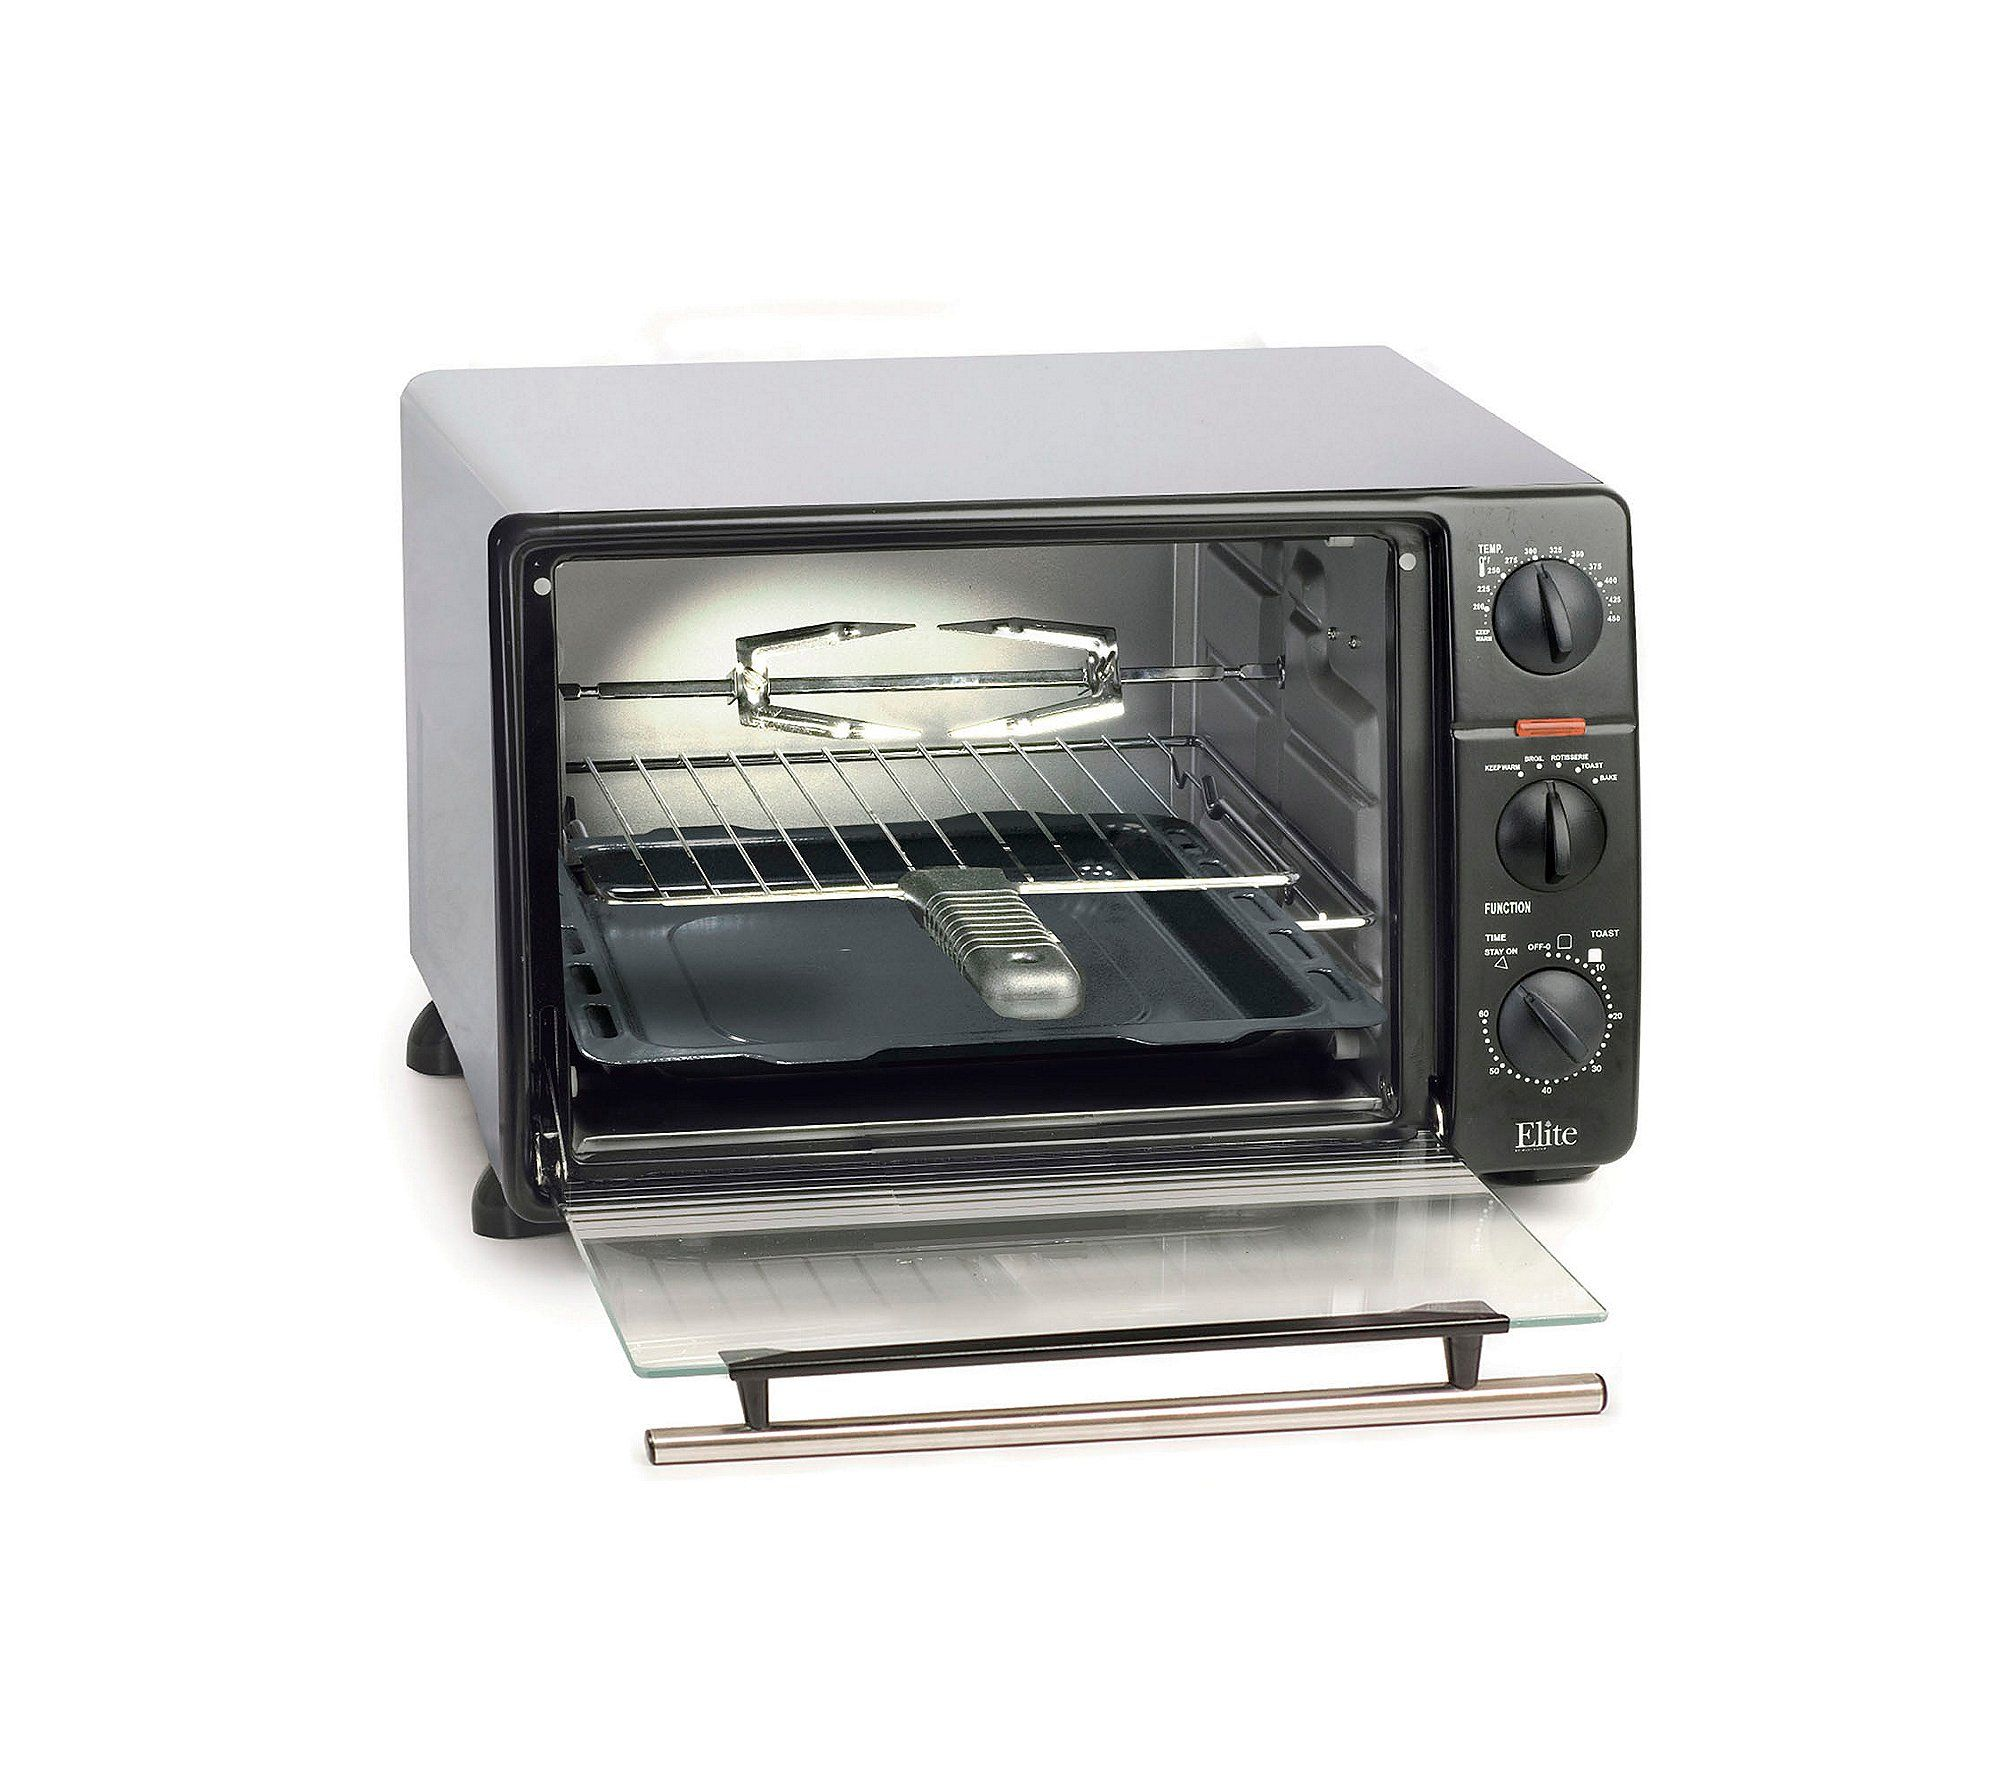 Elite Cuisine Toaster Oven Broiler With Rotisserie Visit The